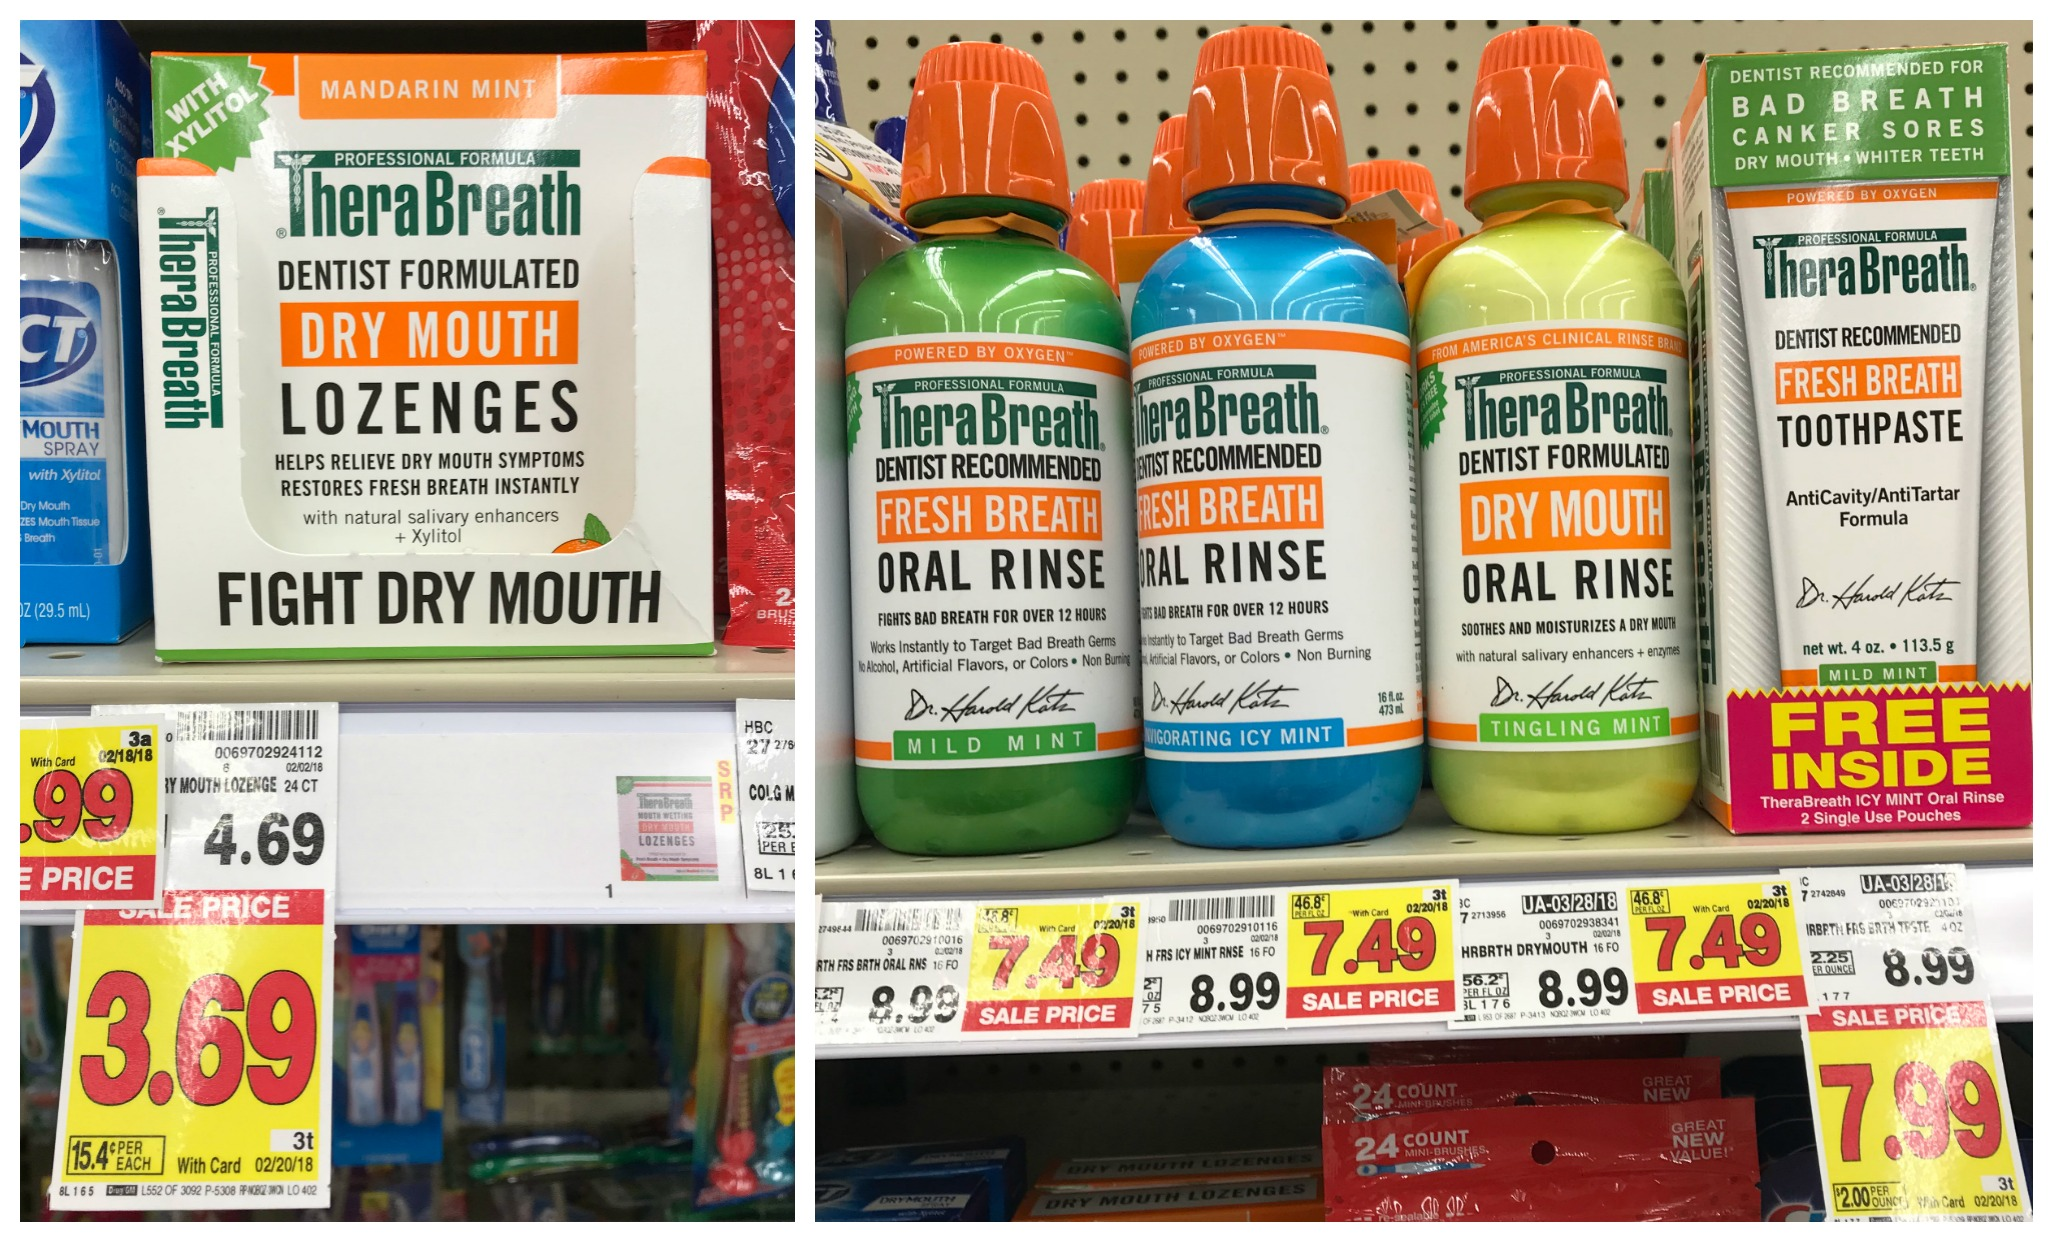 photograph about Therabreath Coupons Printable known as Clean TheraBreath Coupon \u003d Items as minimal as $2.49 at Kroger